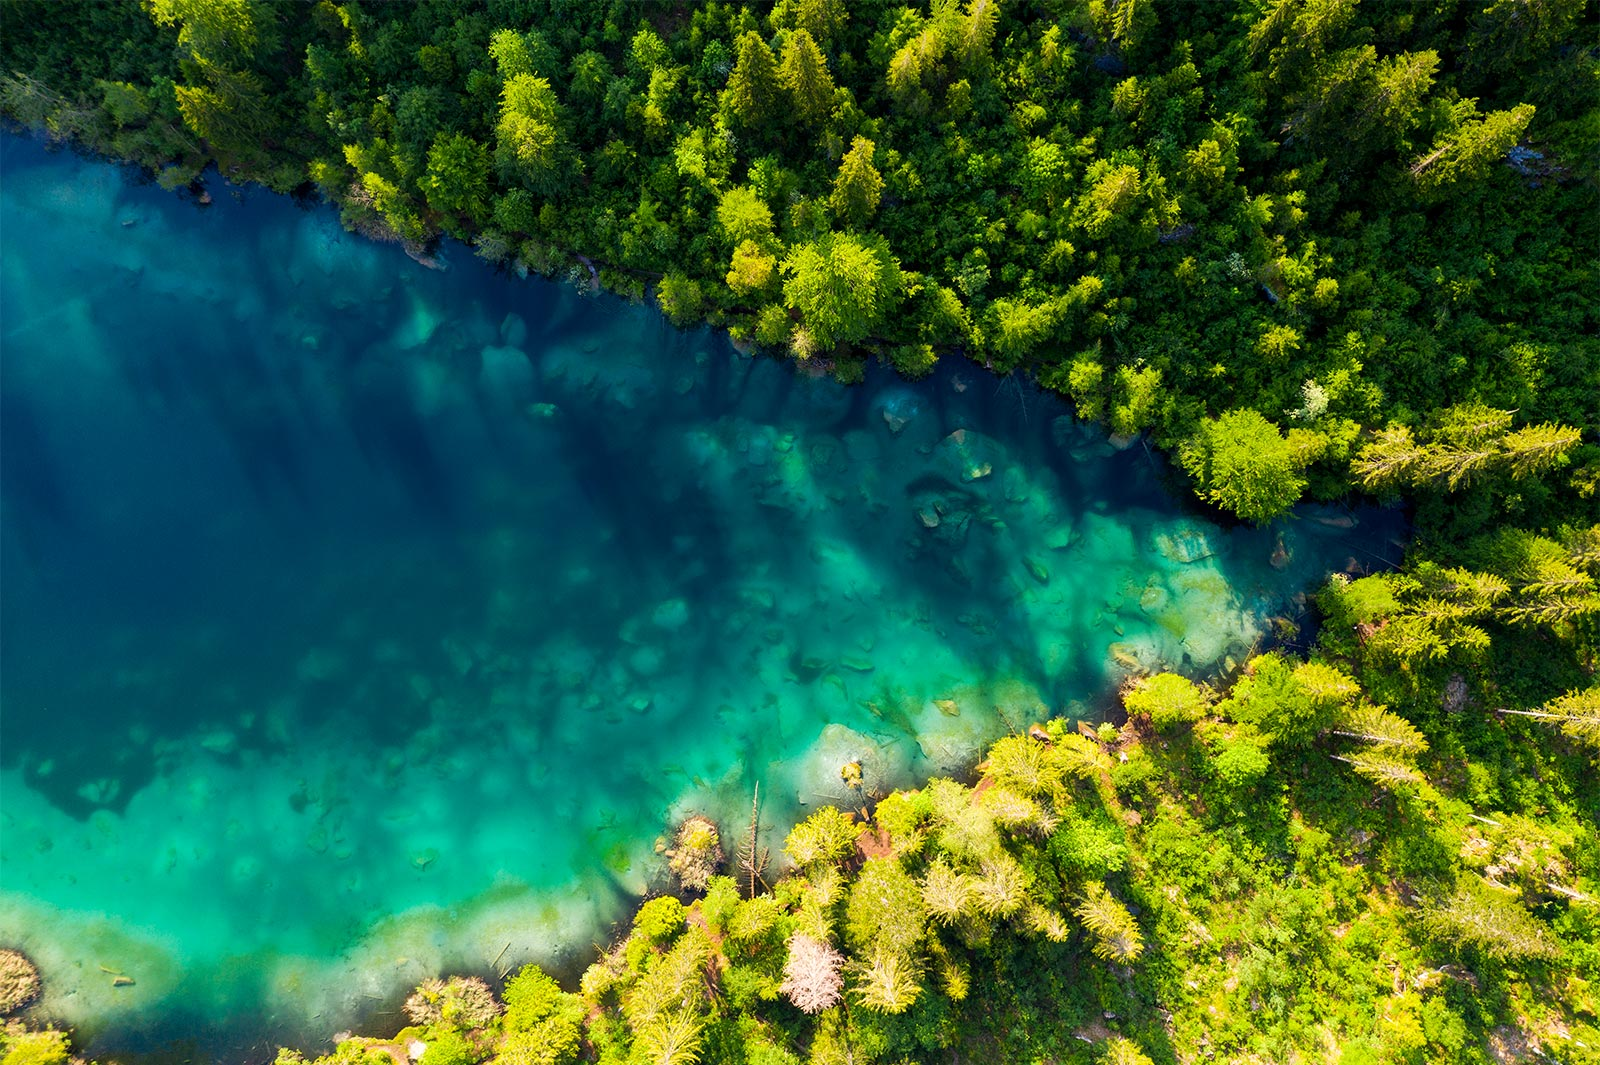 This image is a dense natural forest where a river flows in the middle of Top View. This is an image that describes HD.